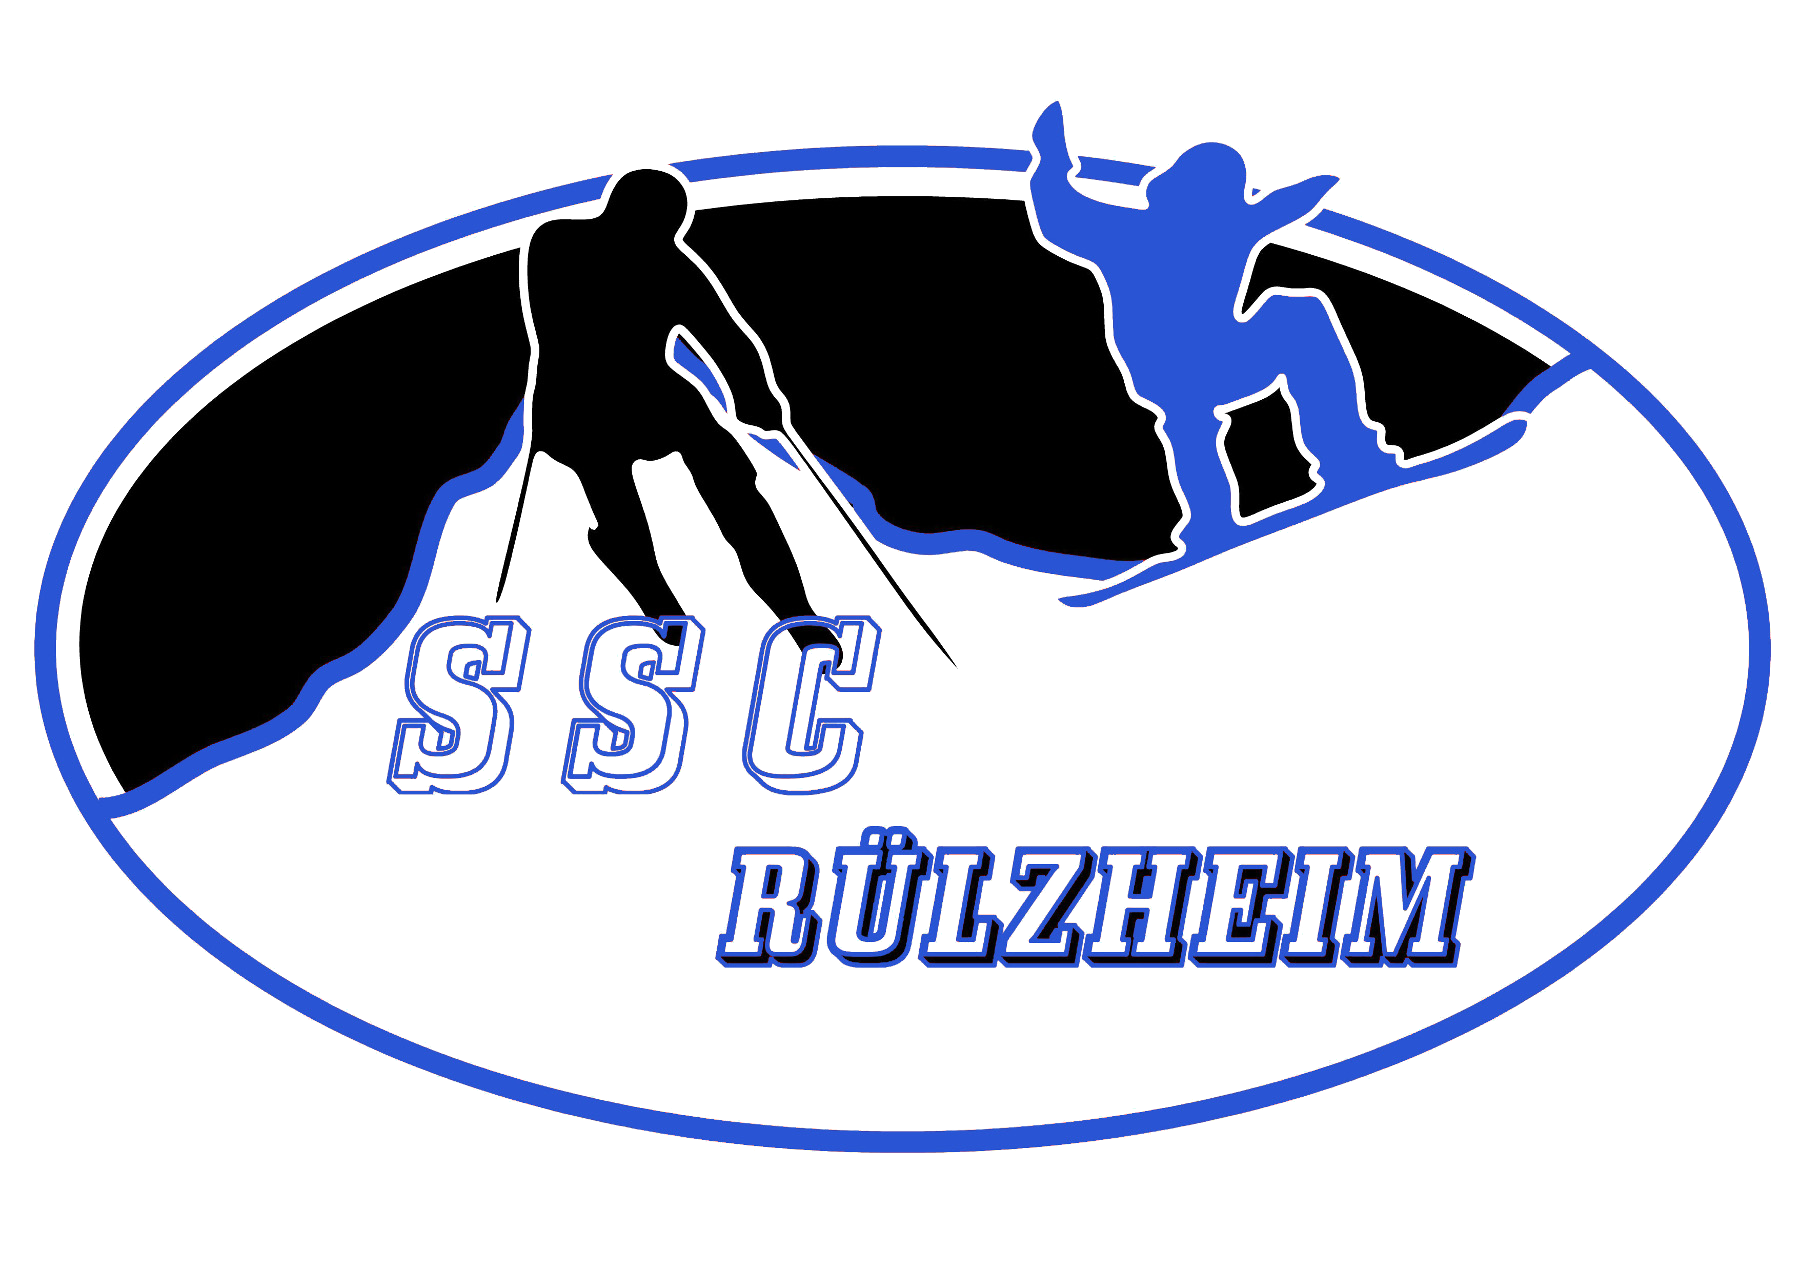 SSC Rülzheim